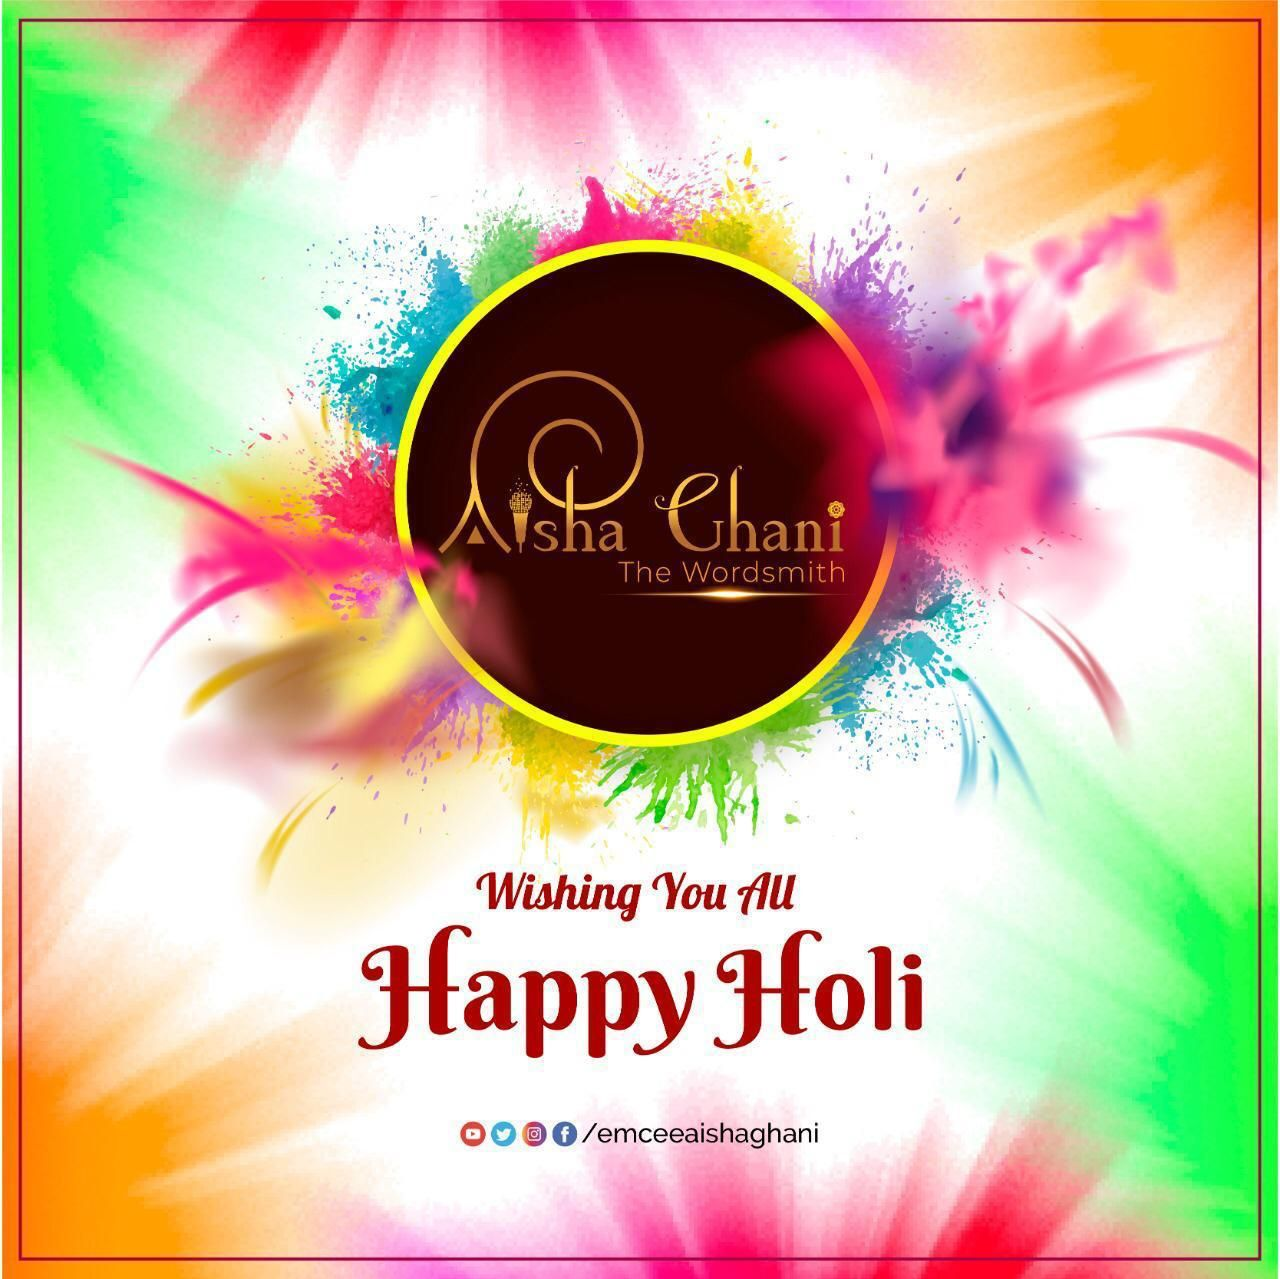 Let's revel in the (HOLI)NESS of the festival !!!  #Teamwordsmith #Anchor #Emcee #Entertainer #Festive #Celebration #Holi #Happiness #Equality #Humanity